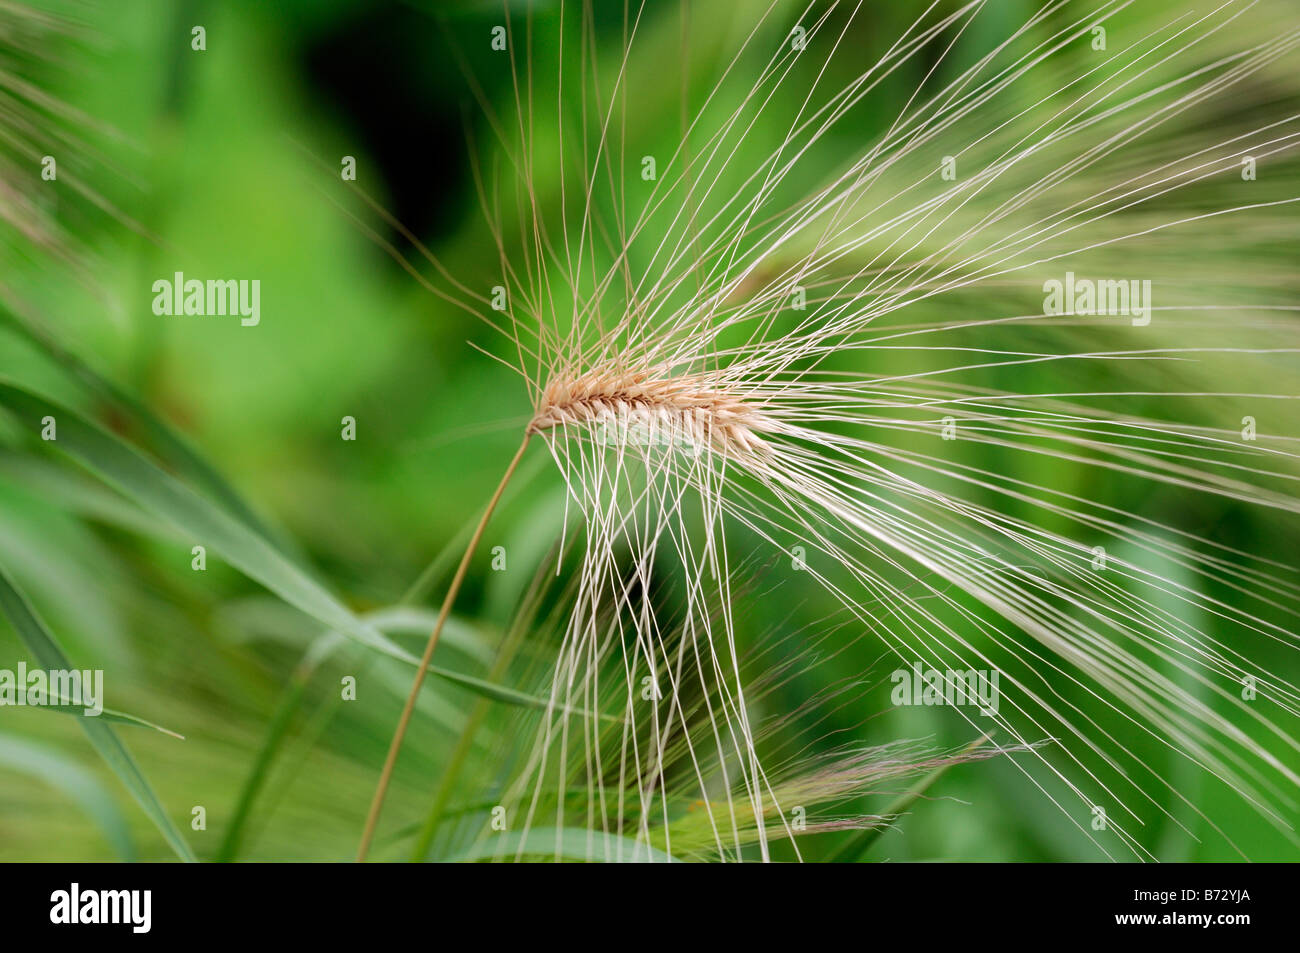 Abstract ornamental grass green structure structural garden gardening - Stock Image